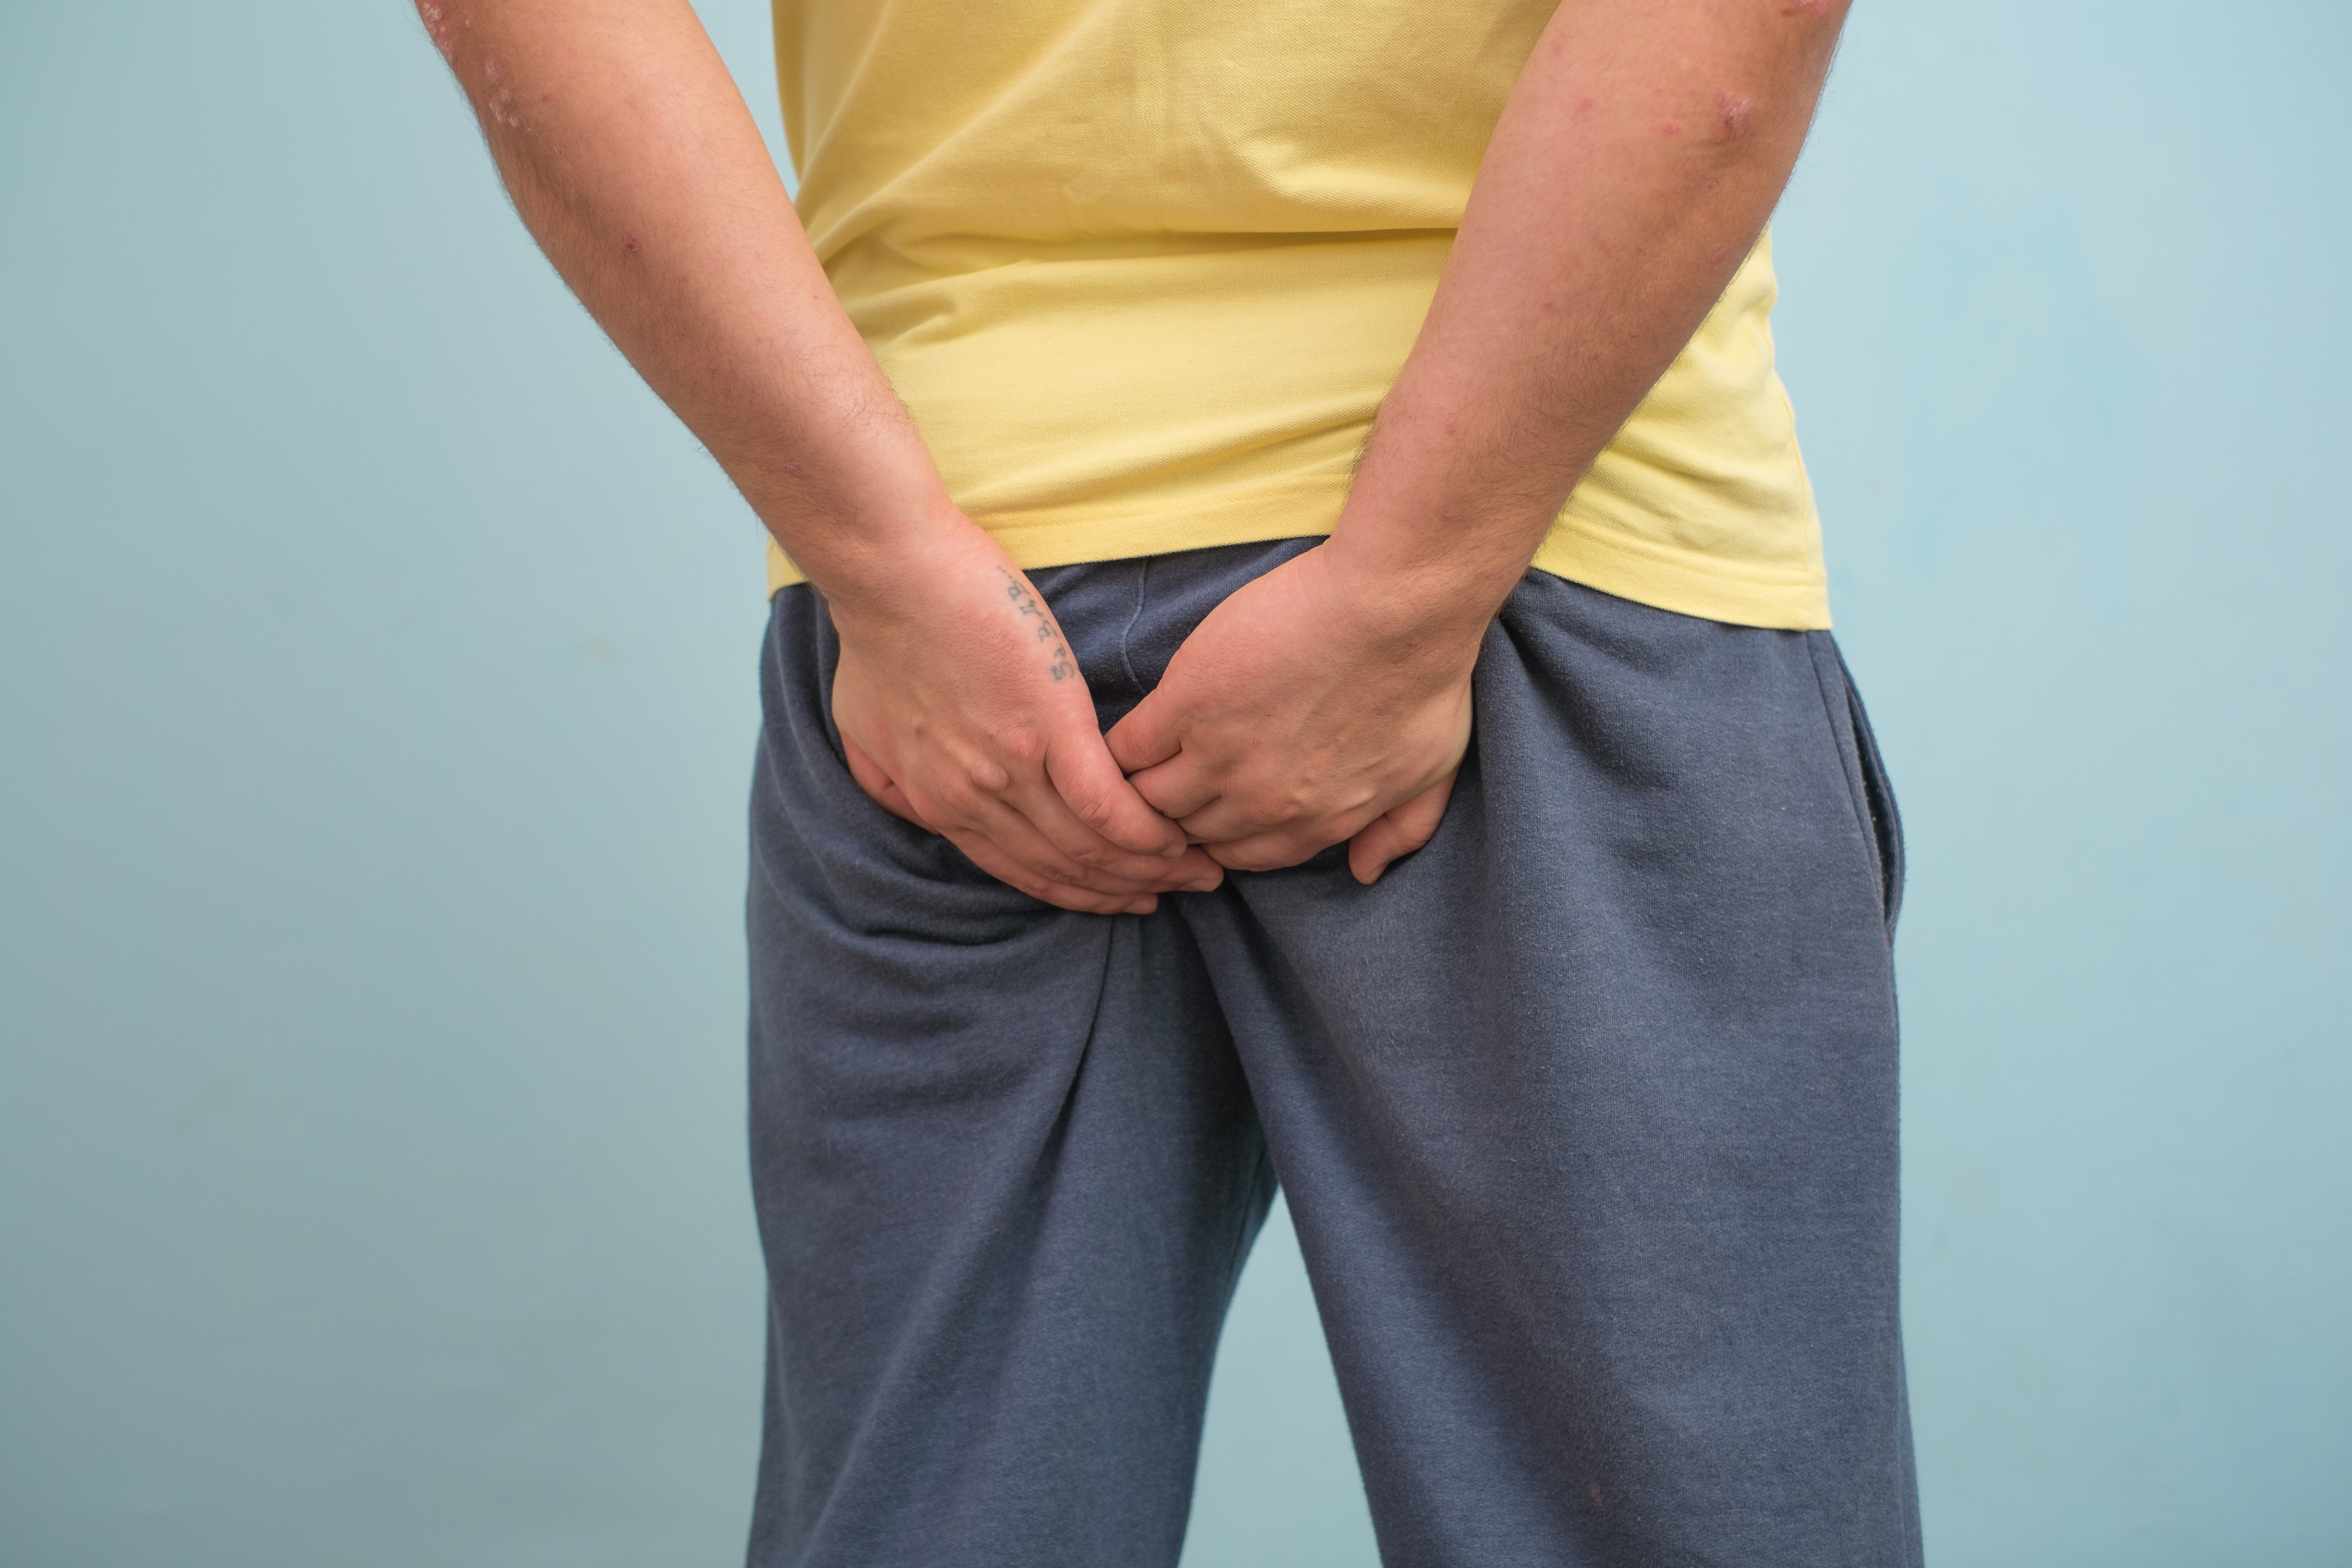 An image depicting a person suffering from anal mucous discharge symptoms